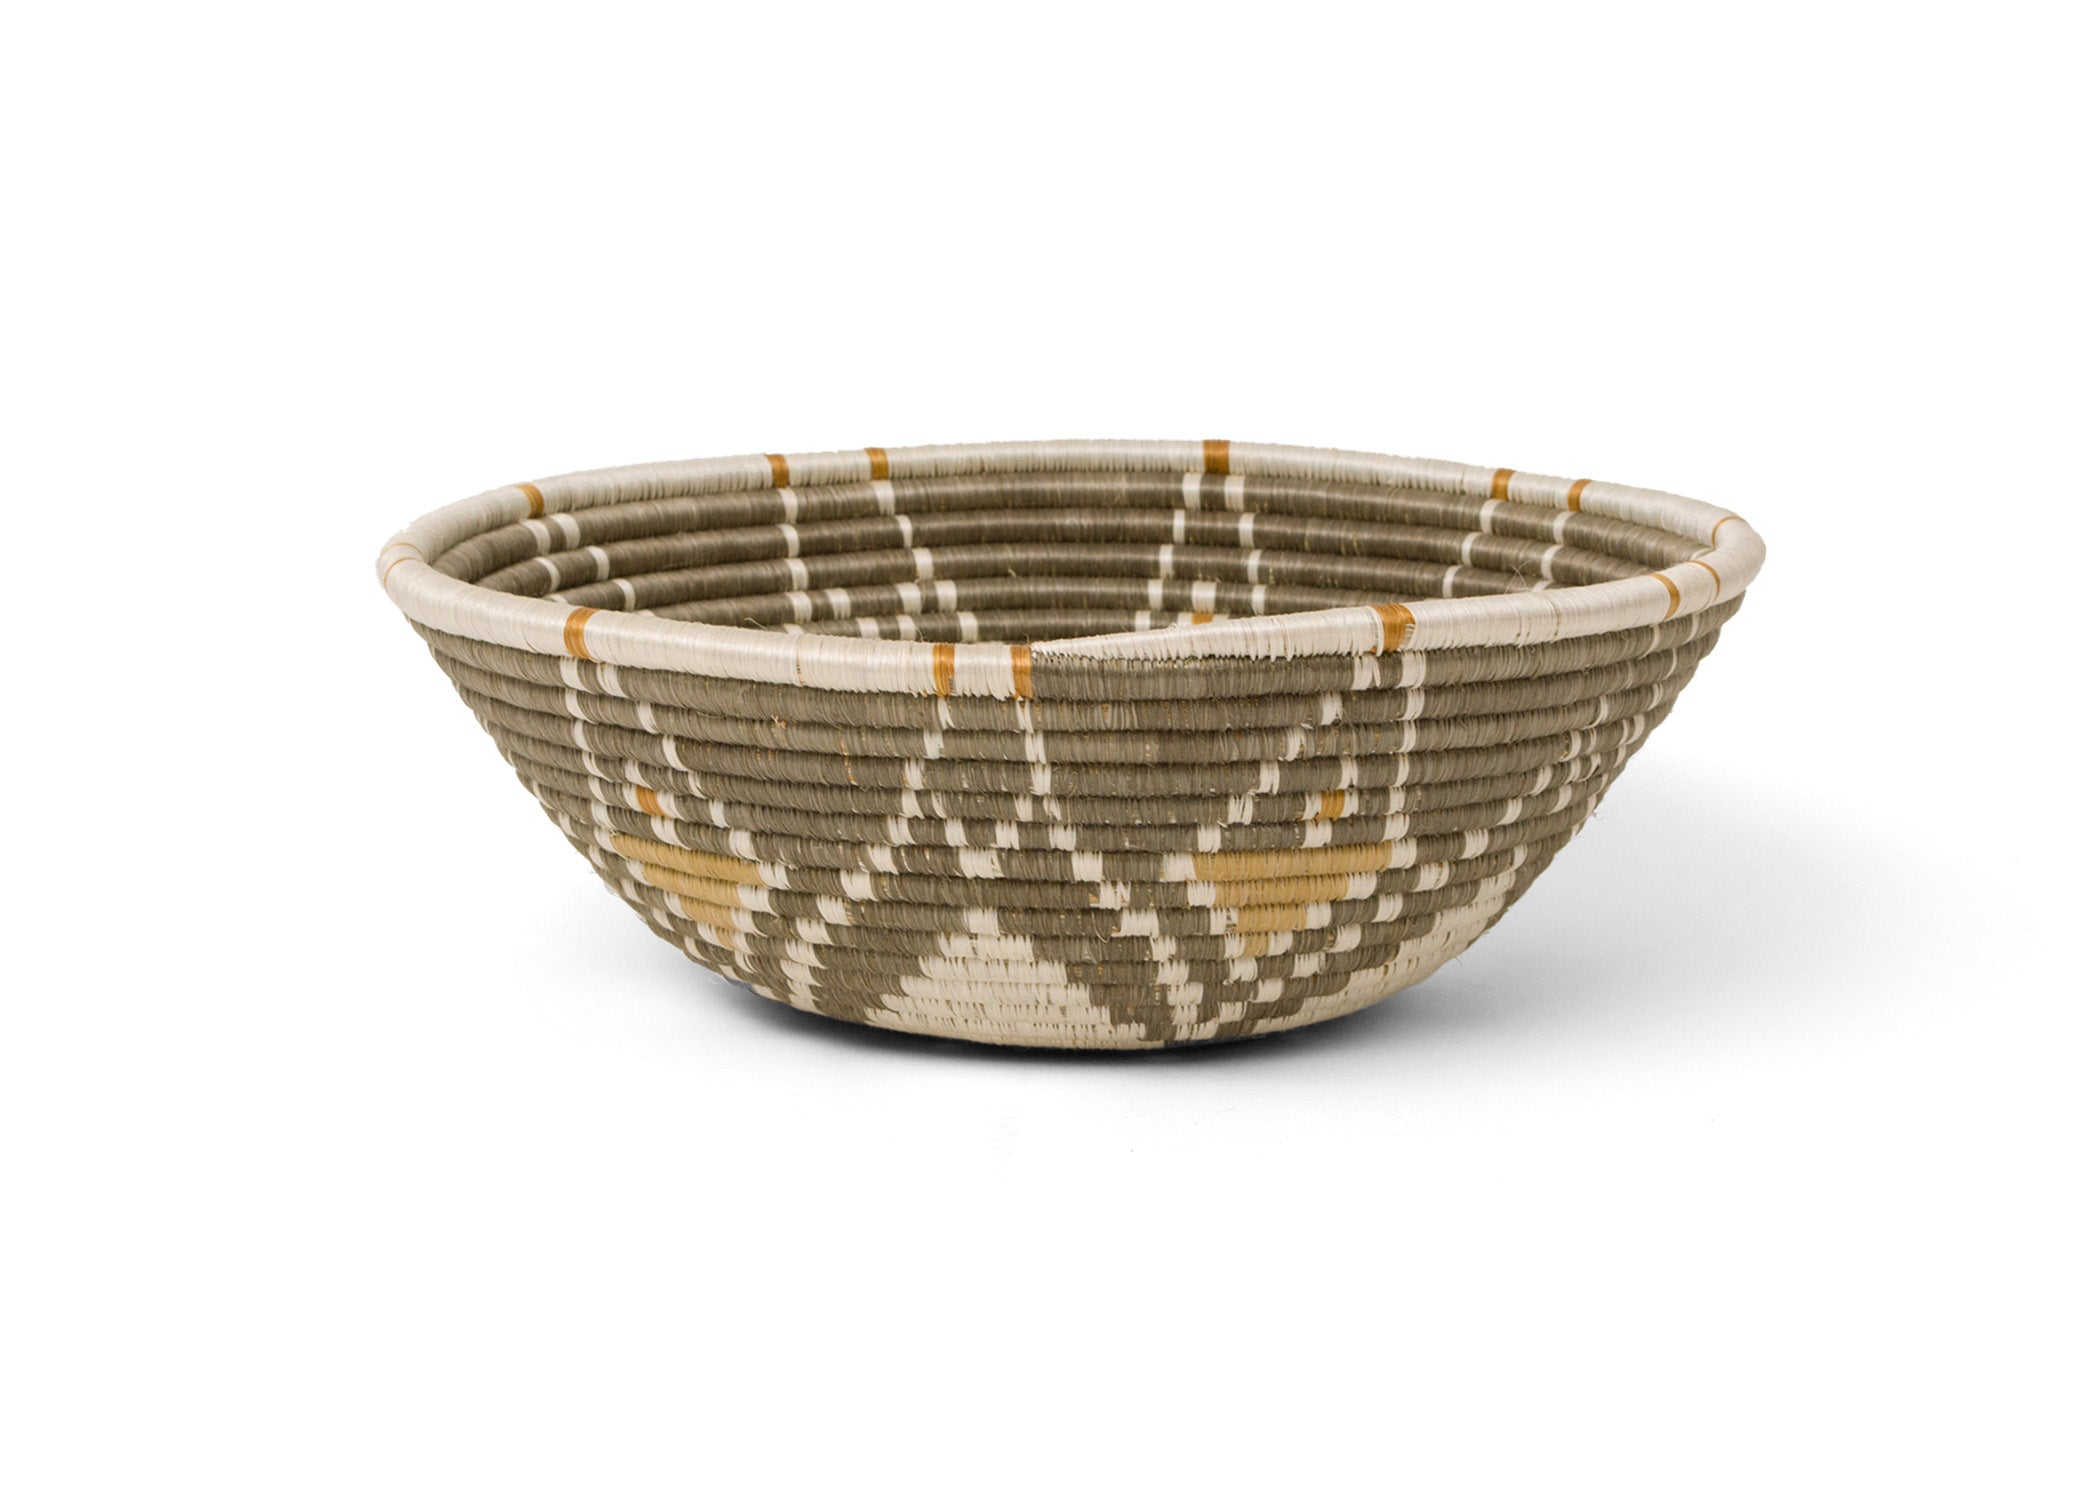 Jumbo Light Taupe Intore Bowl - KAZI - Artisan made high quality home decor and wall art